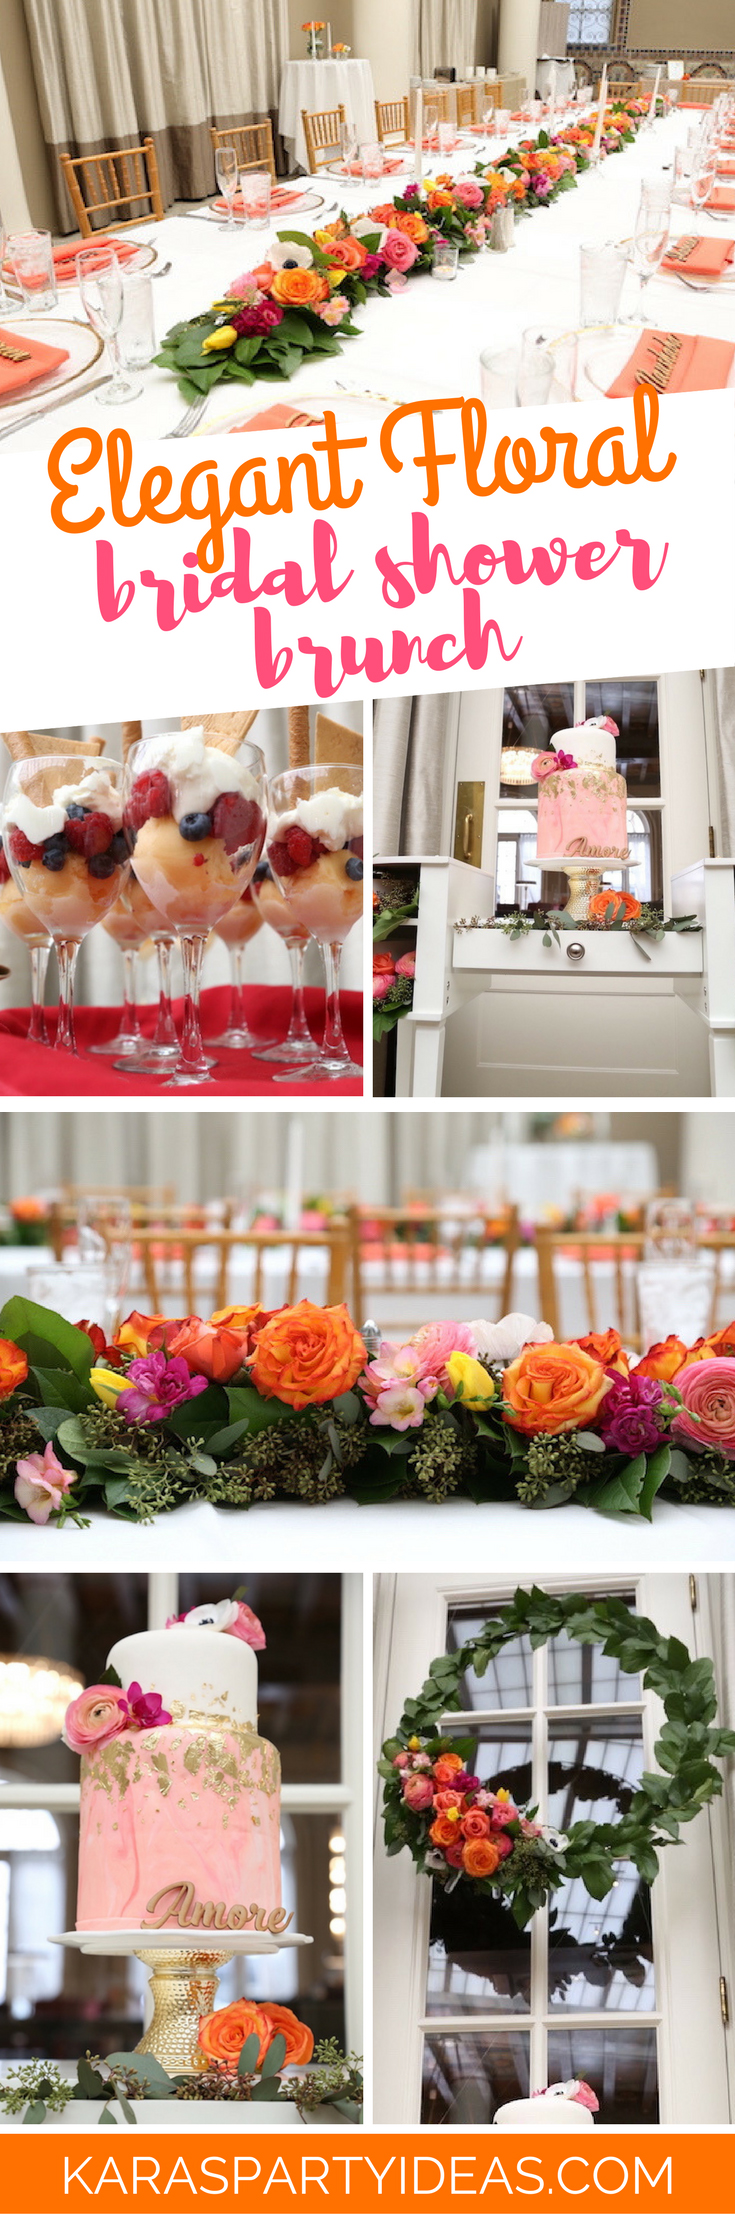 Elegant Floral Bridal Shower Brunch via Kara's Party Ideas - KarasPartyIdeas.com (1)